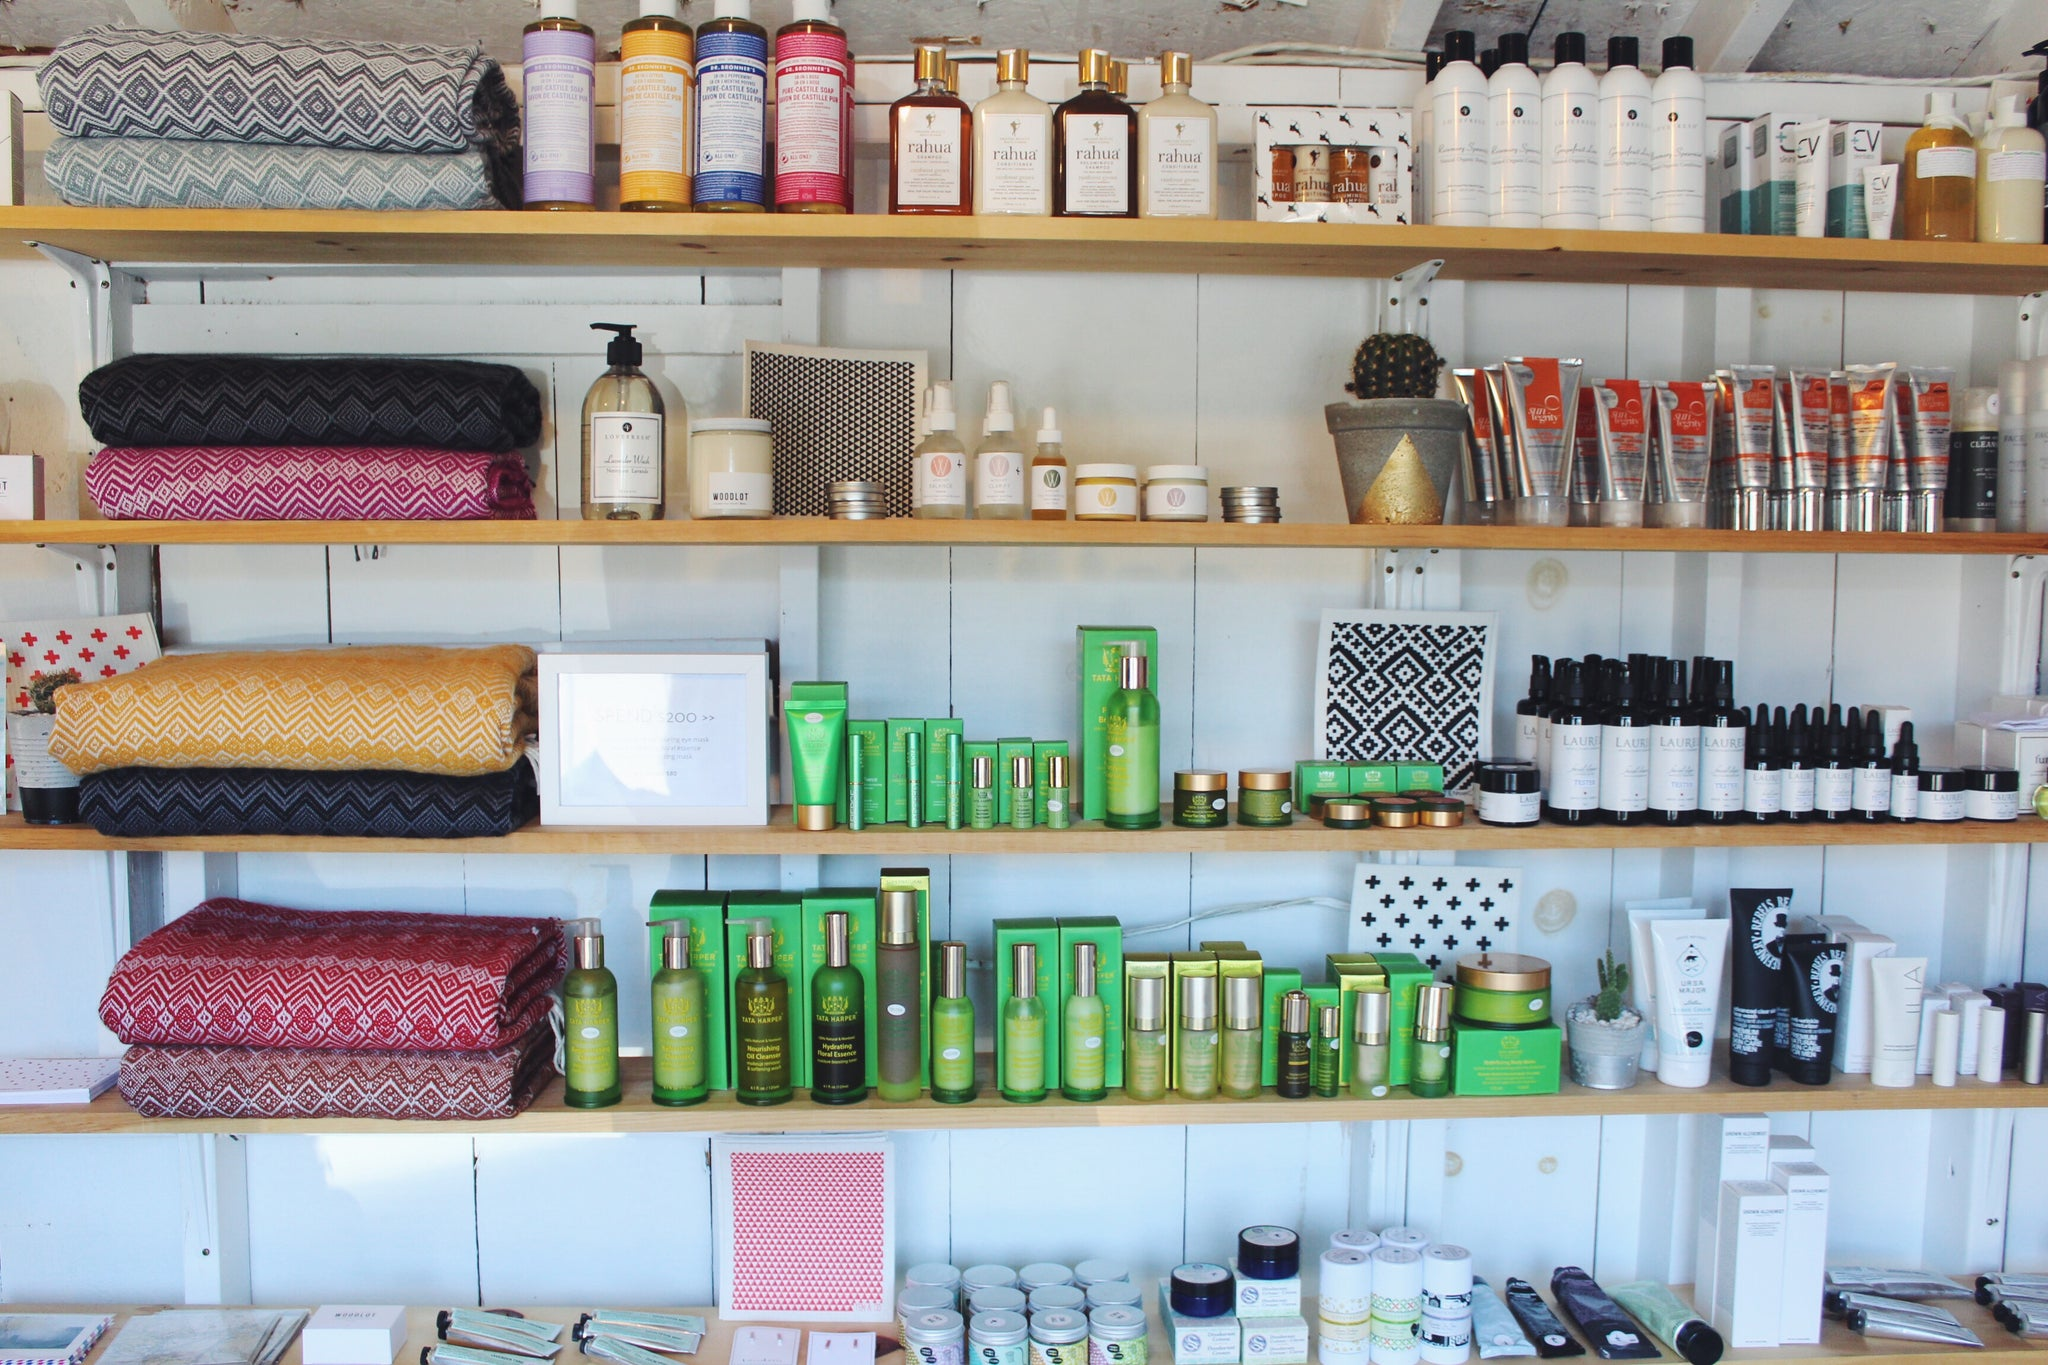 Holistic and natural health and beauty items line every wall.